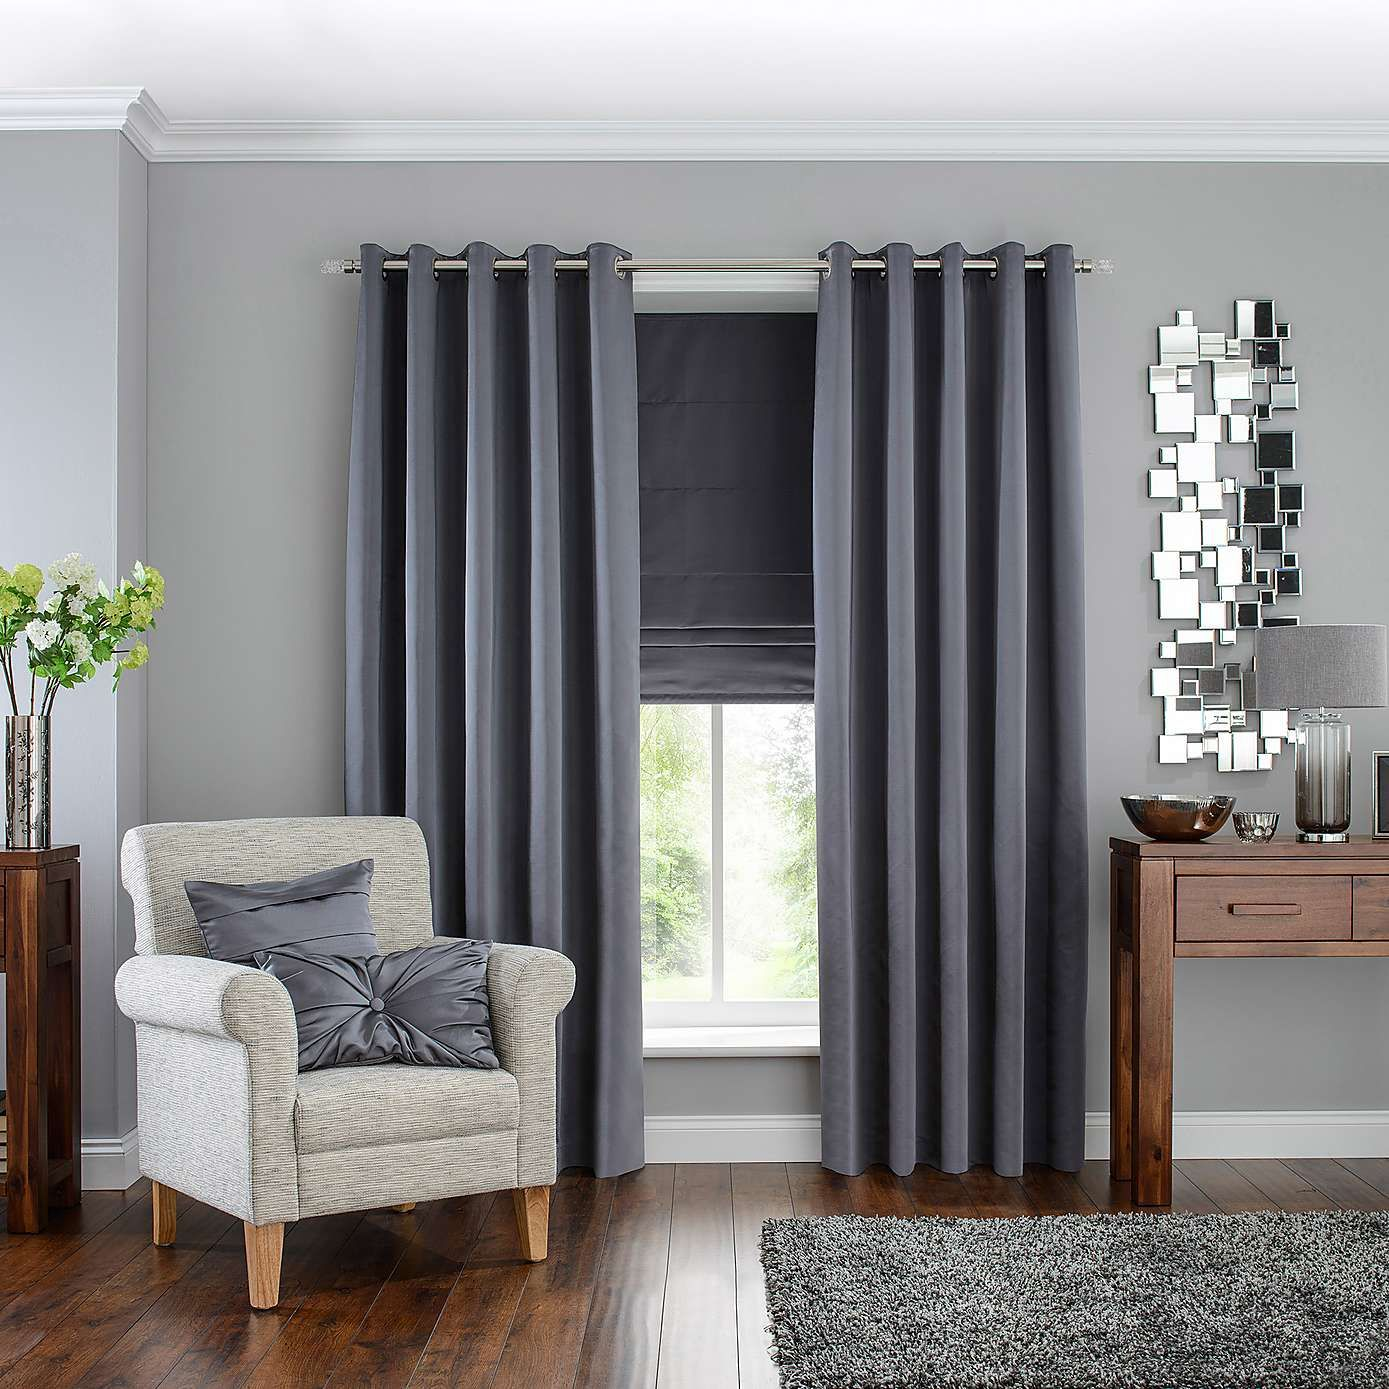 Explore Lounge Curtains Living Room And More